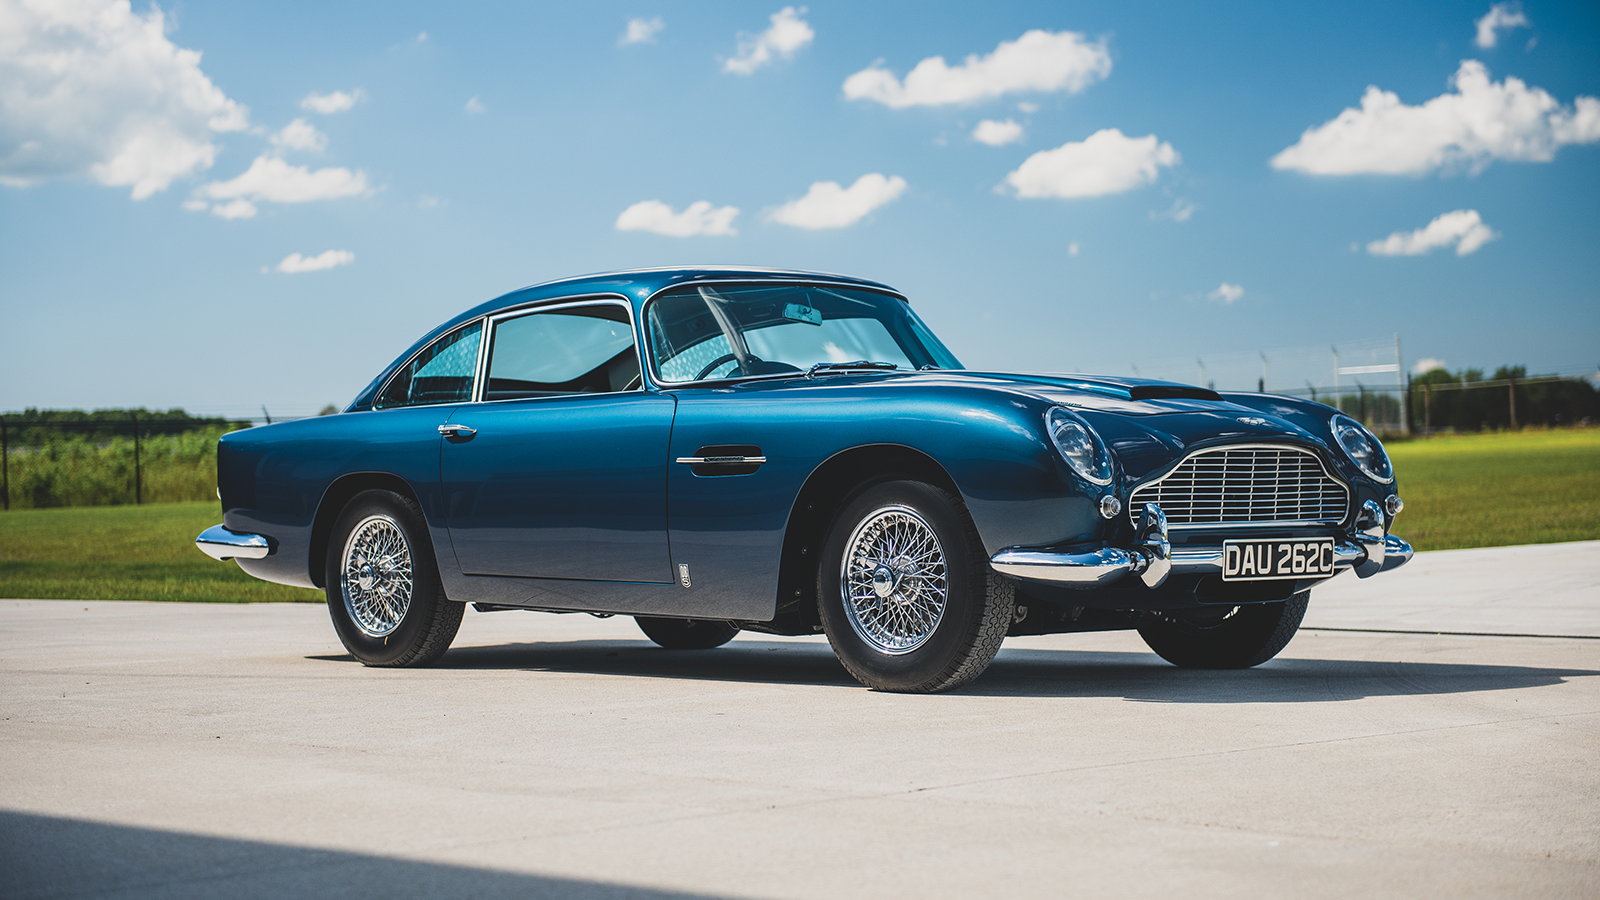 Magnificent 230-car collection up for auction